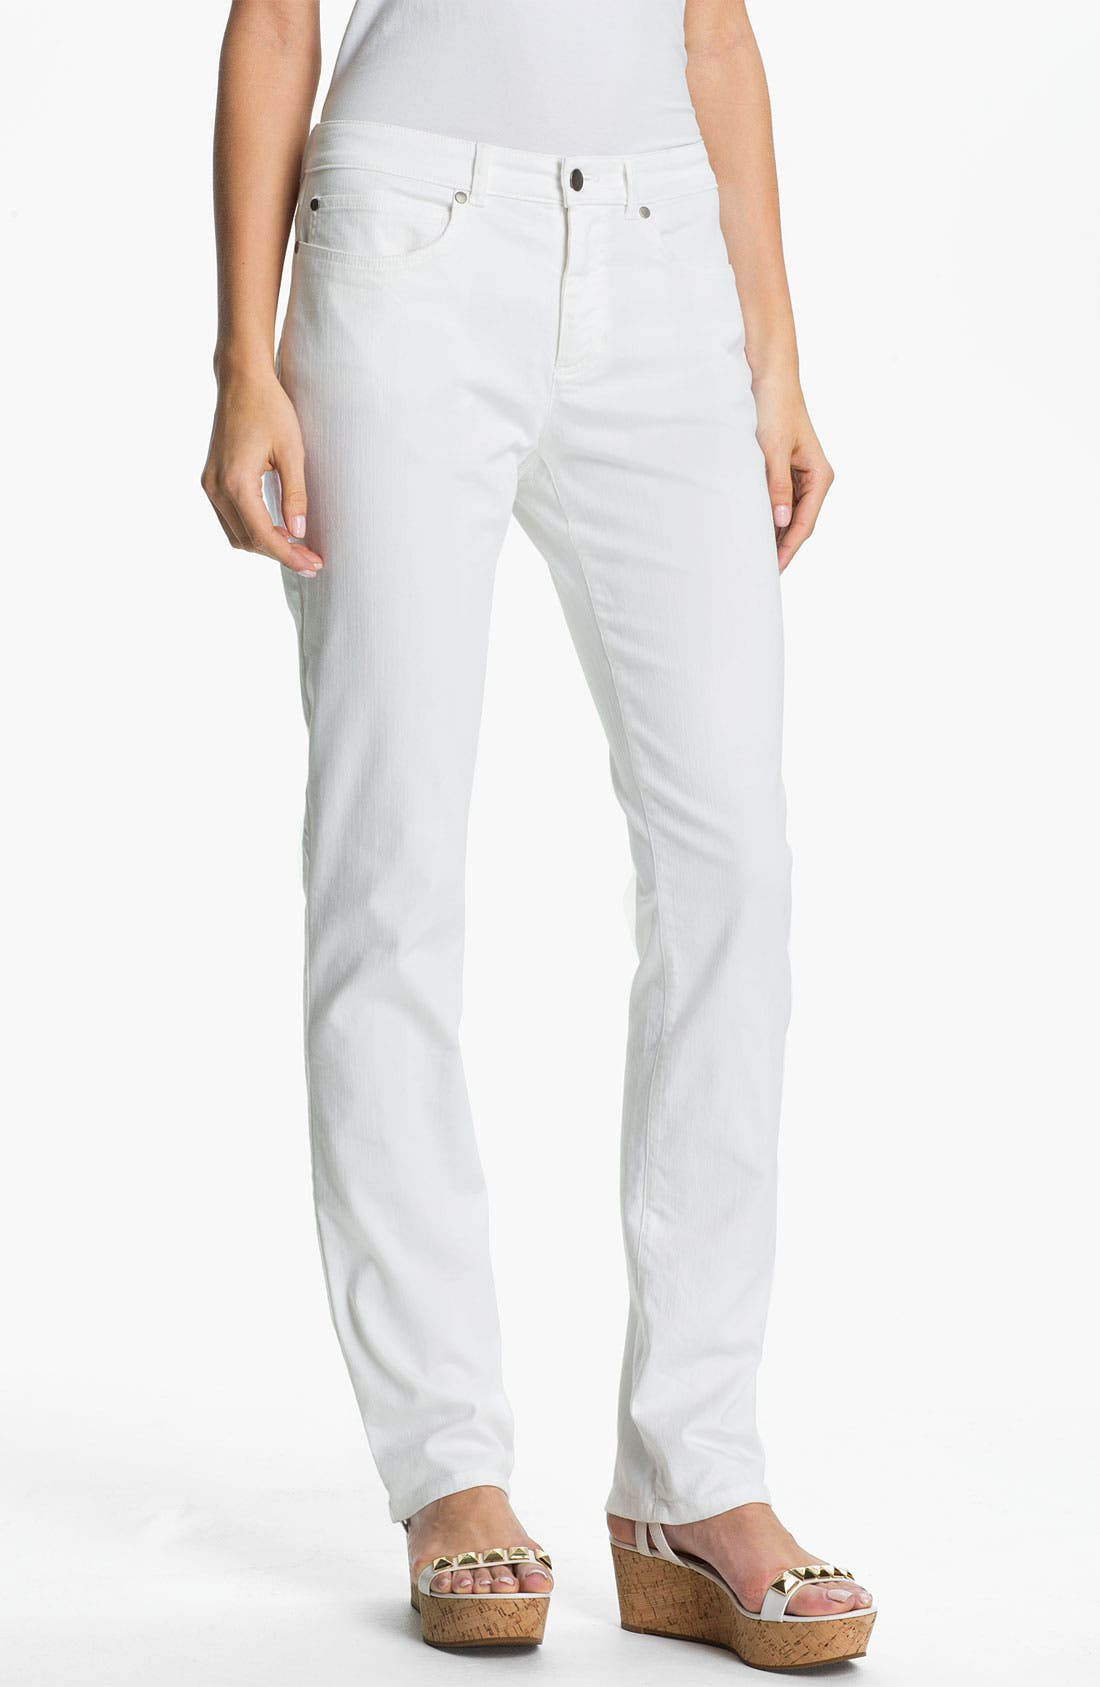 Alternate Image 1 Selected - Eileen Fisher White Denim Jeans